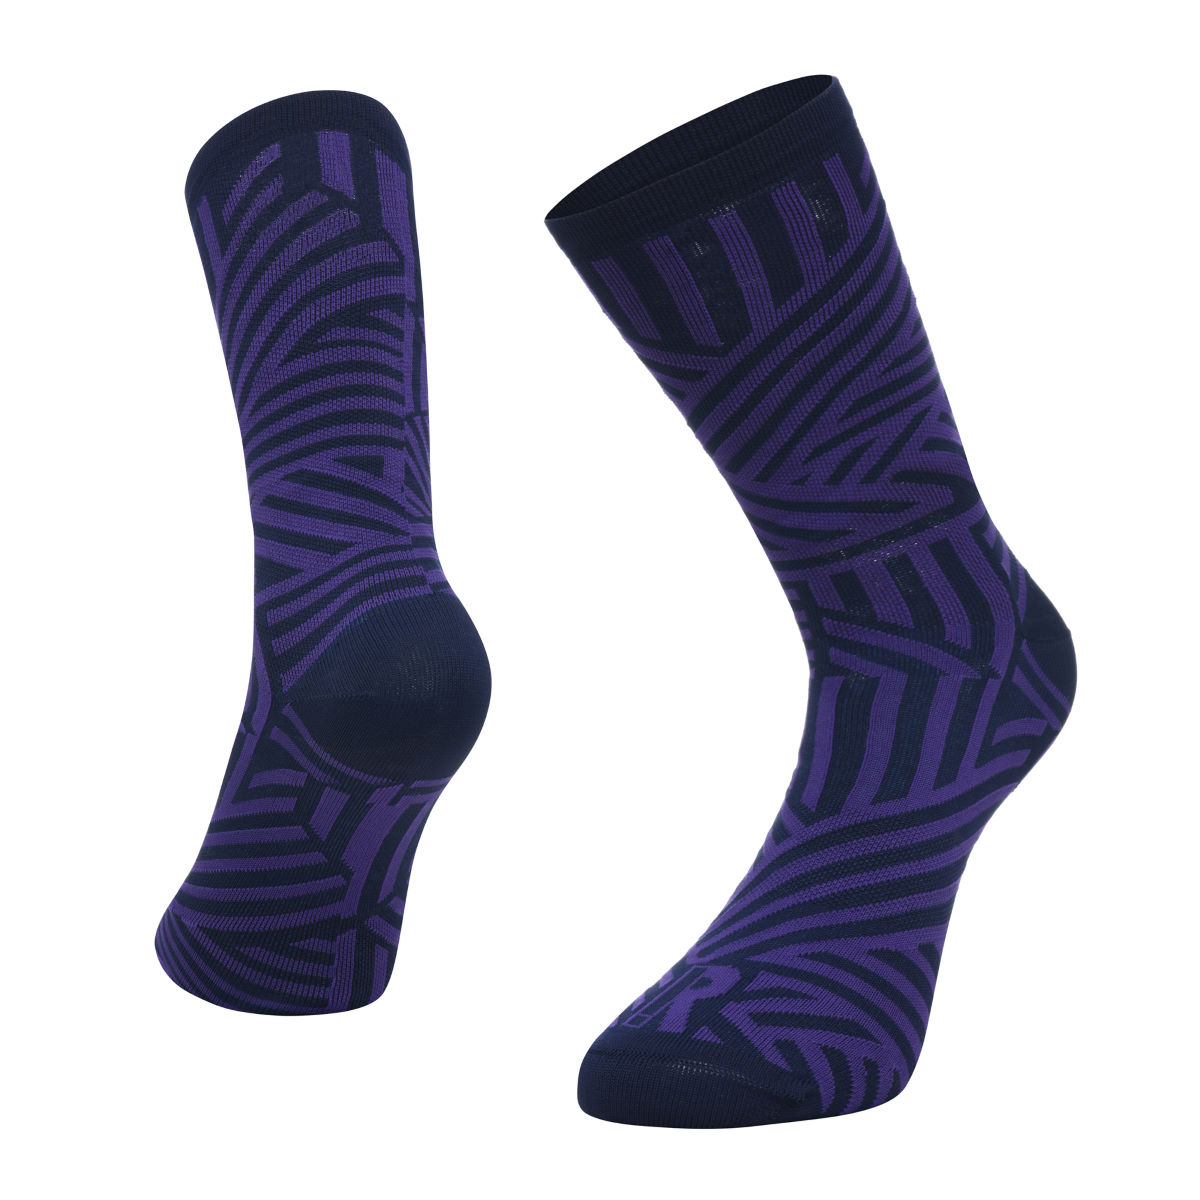 Ratio Dash 20 cm Sock (Navy/Purple) - Calcetines